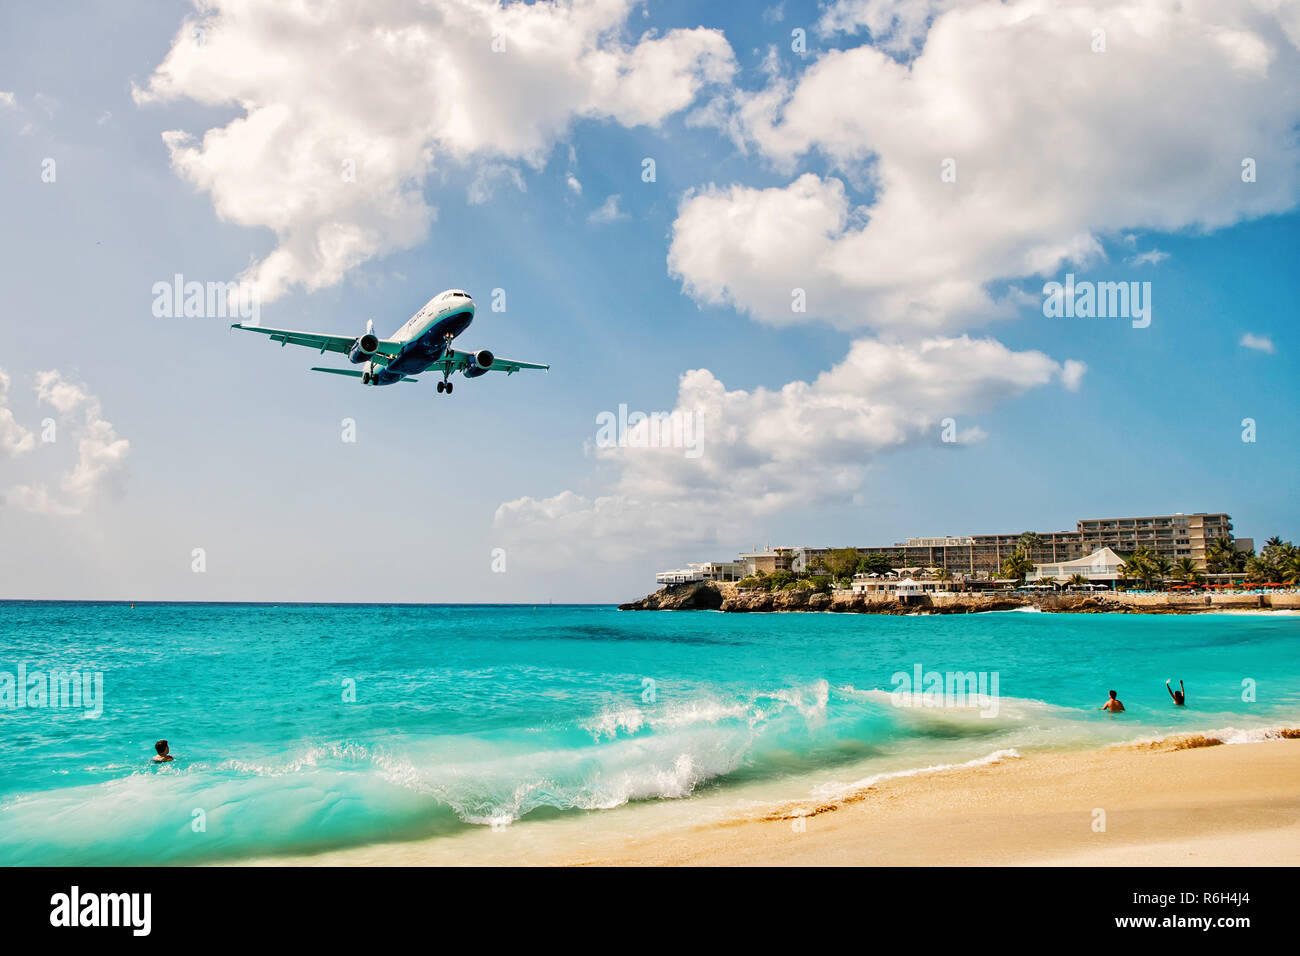 St.Maarten, Kingdom of Netherlands - February 13, 2016: beach crowds observe low flying airplanes landing near Maho Beach on island of St.Maarten in the Caribbean - Stock Image